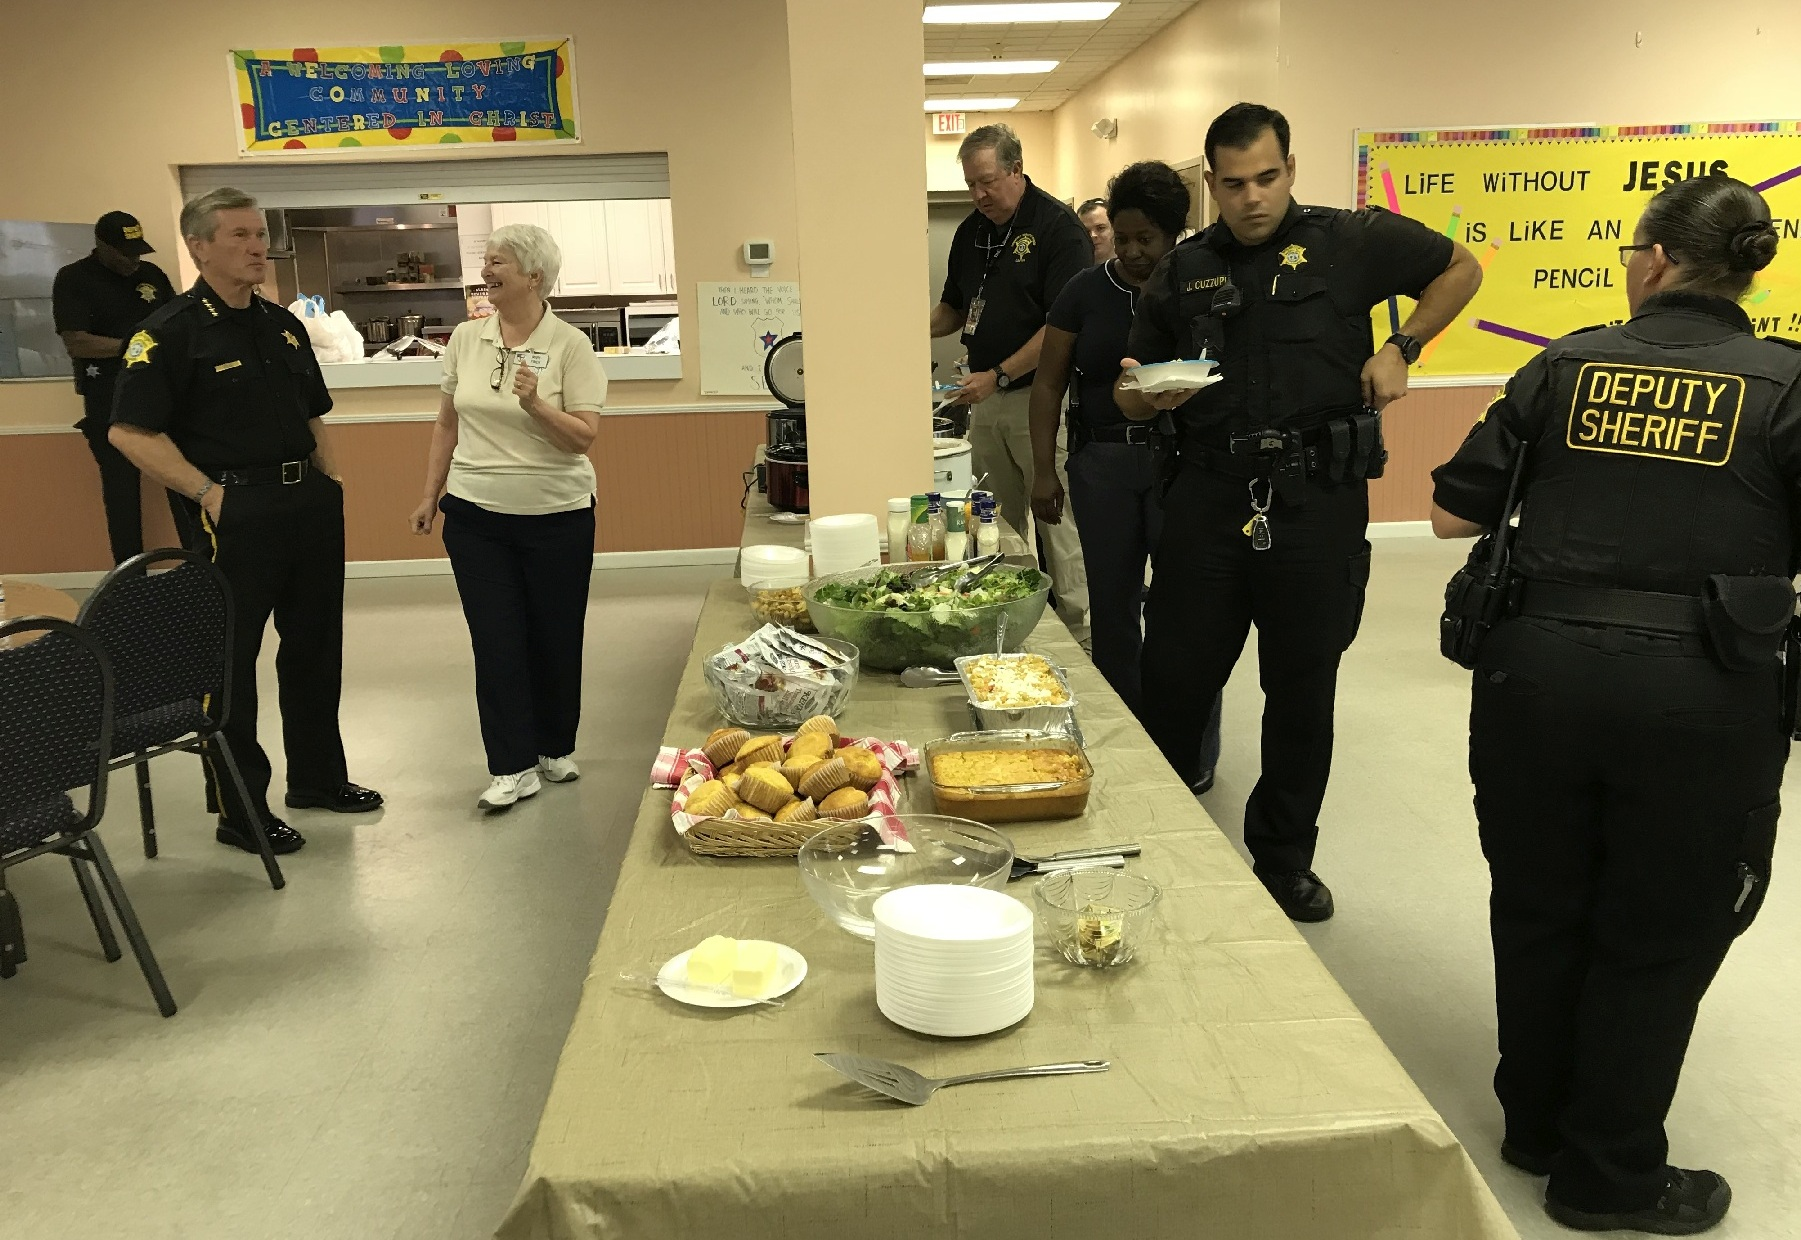 First Responders Seheriff Lott and Mary talking as the buffet opens to deputy wheriffs 3588